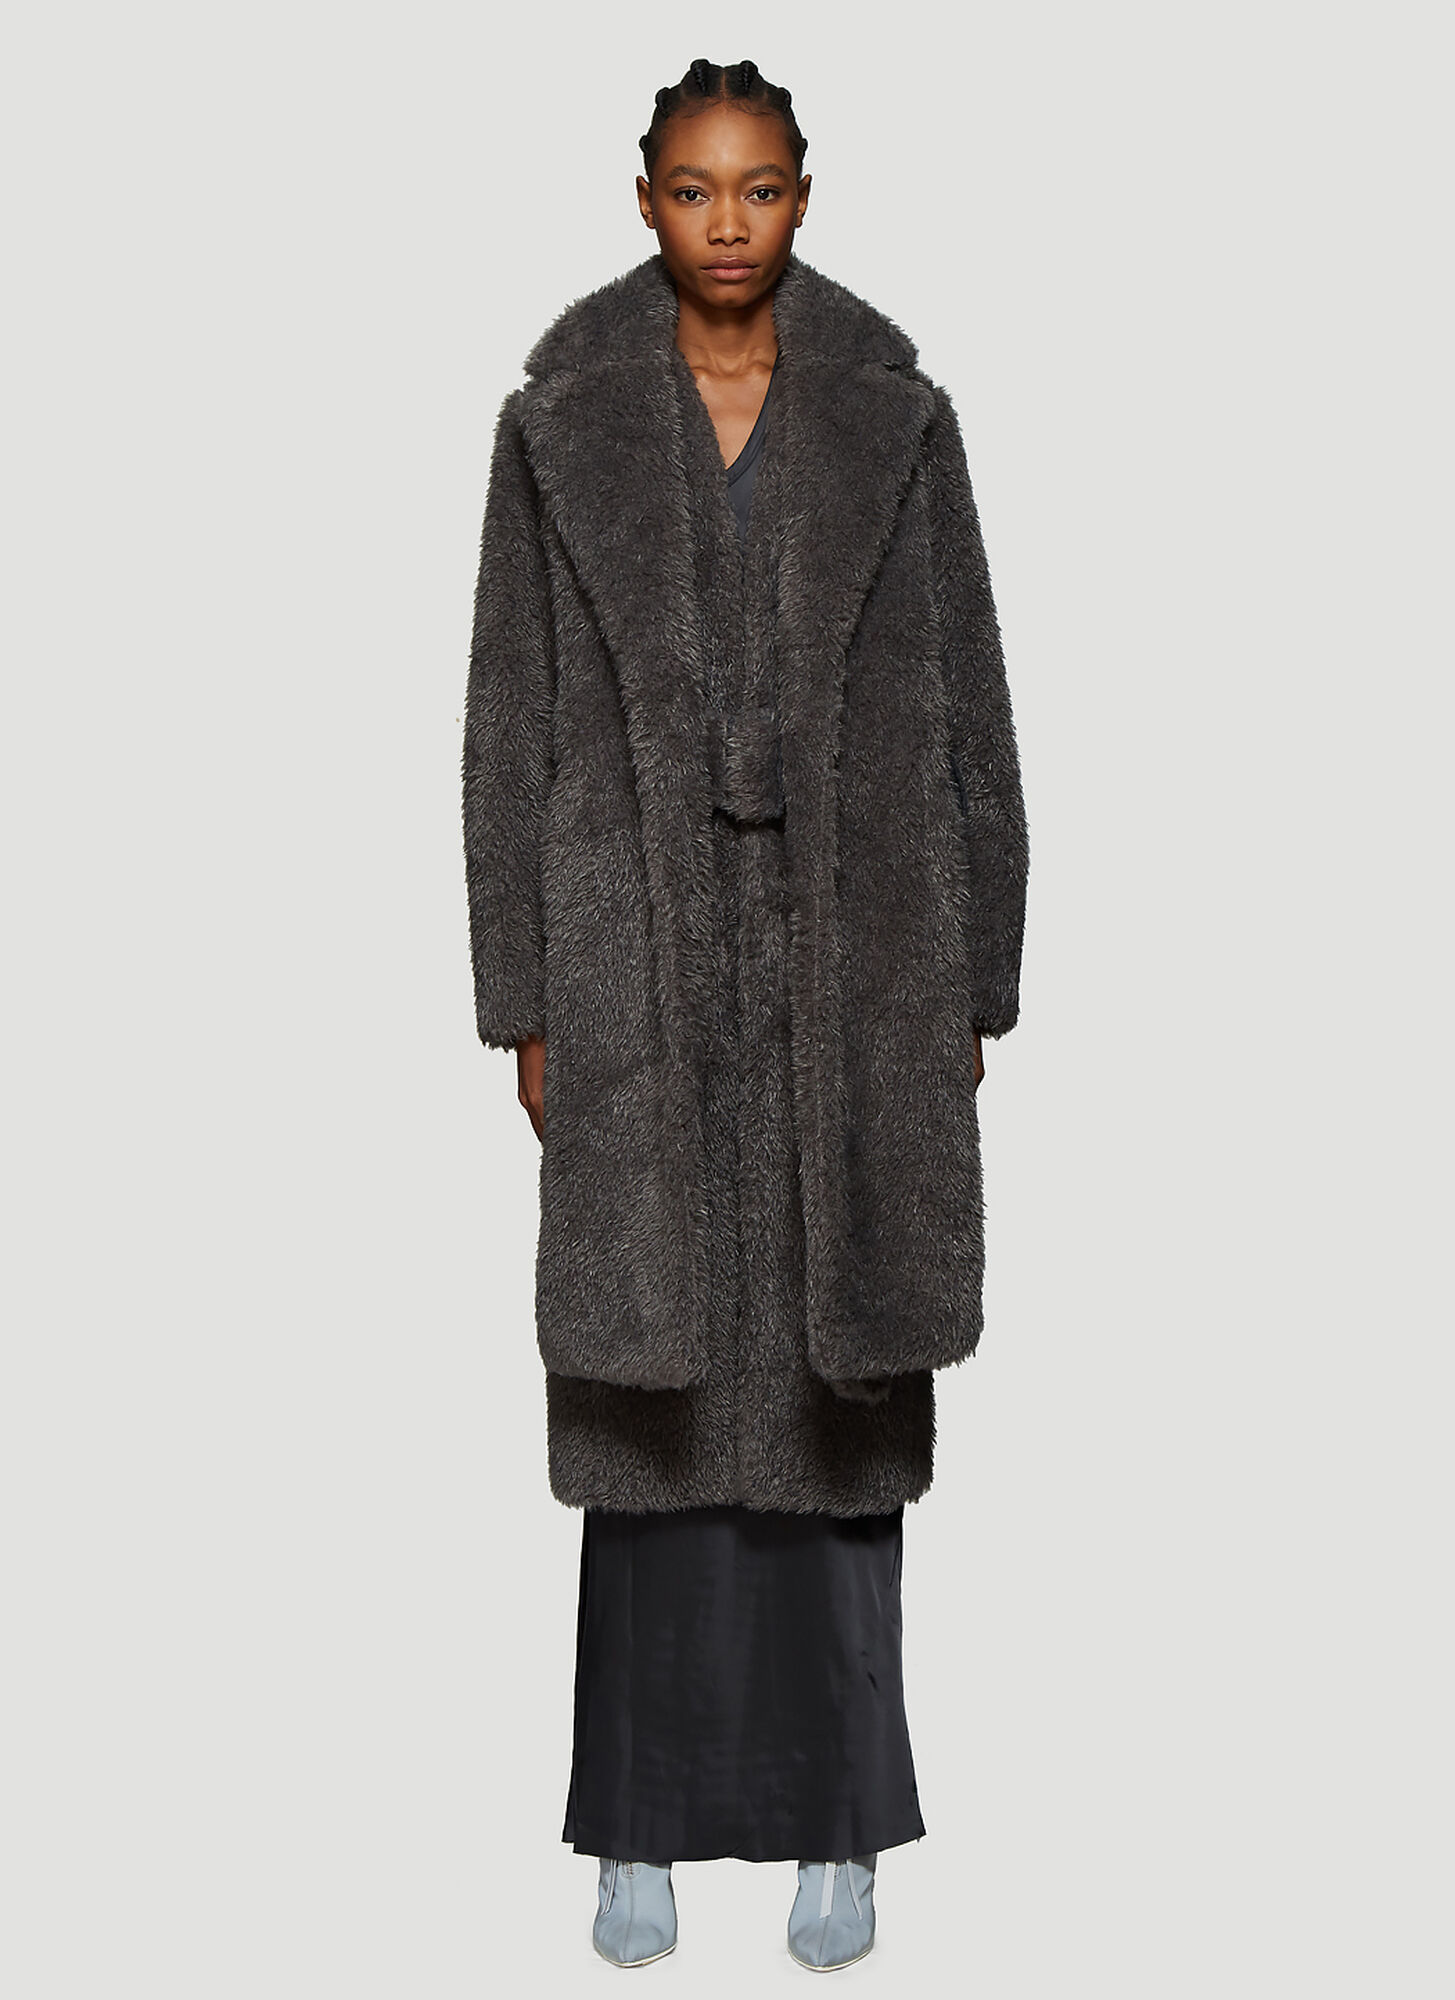 Helmut Lang Detachable Collar Faux Fur Coat in Grey